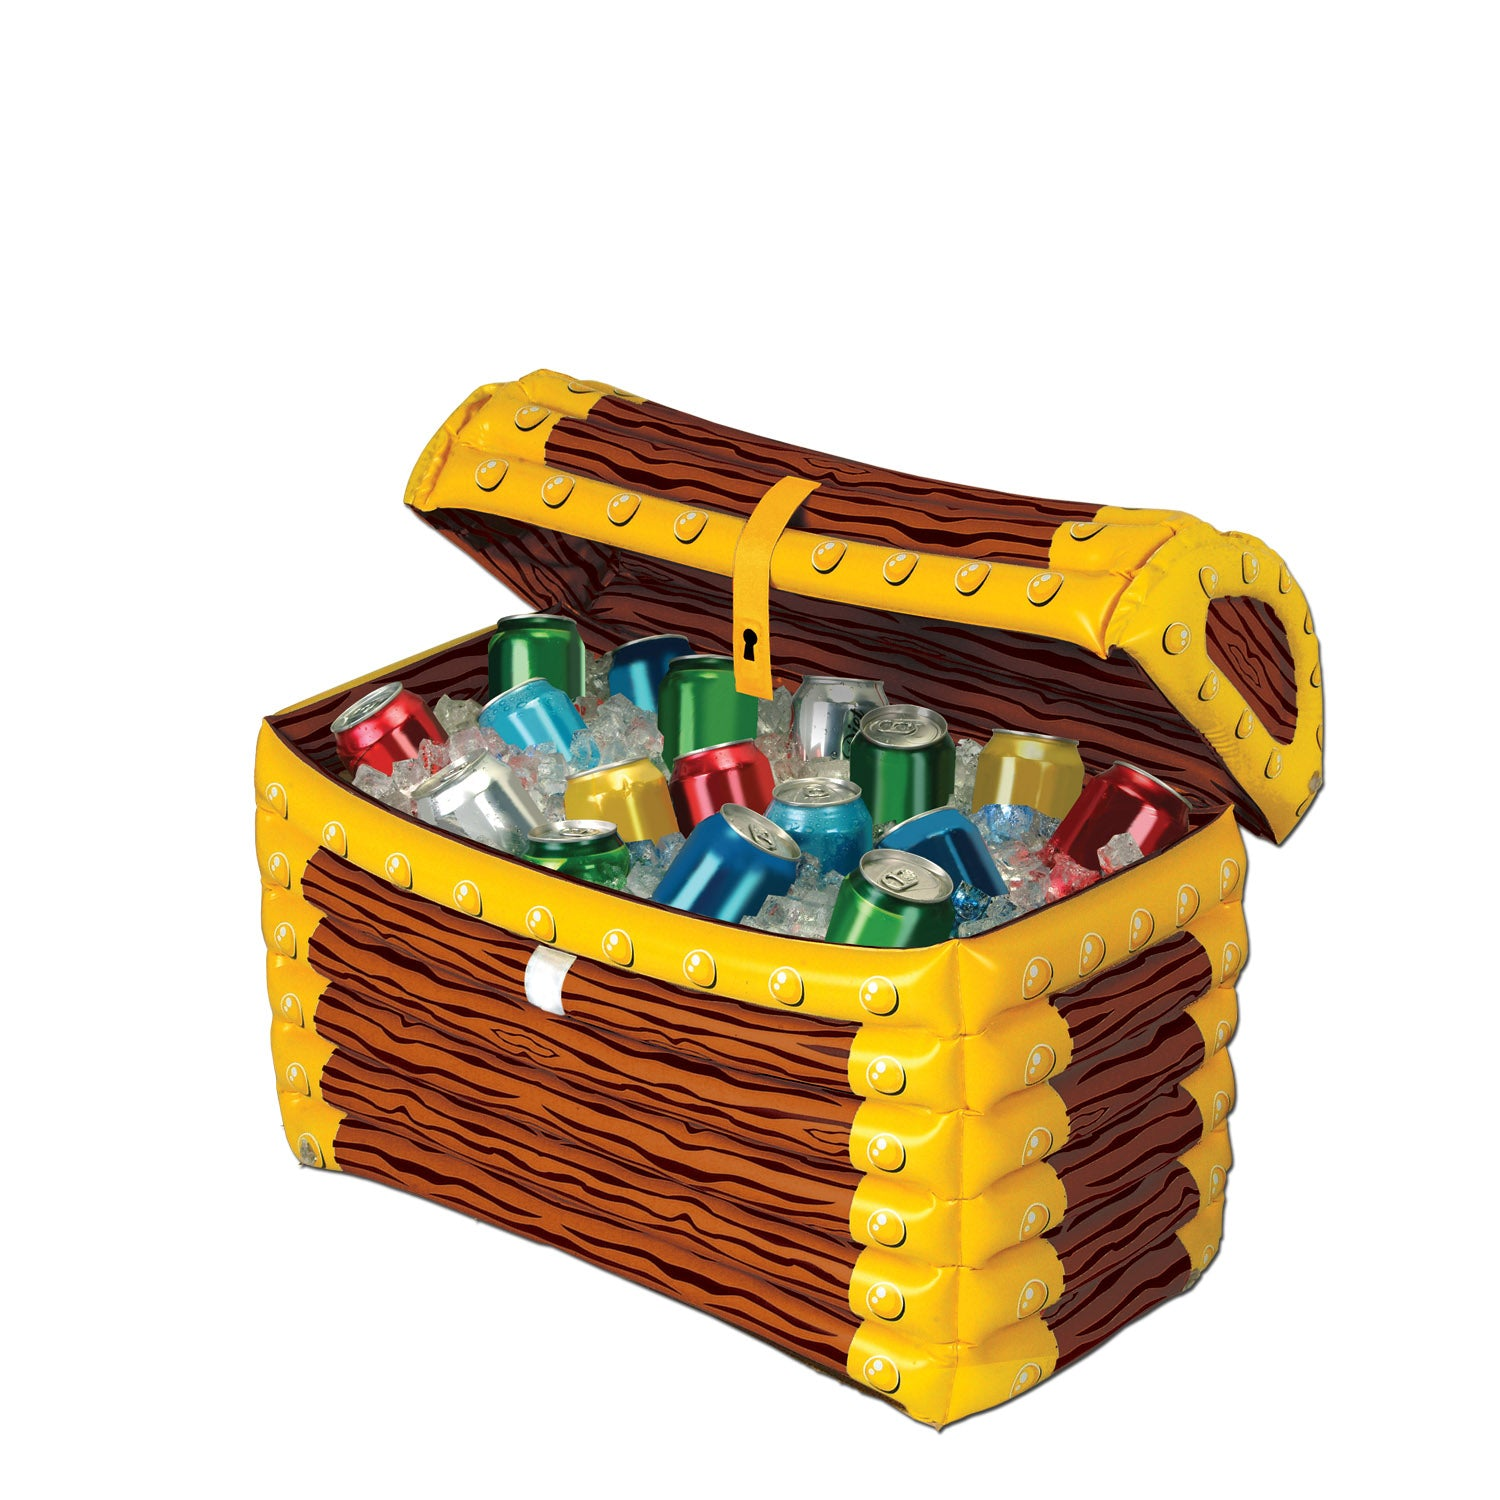 Inflatable Treasure Chest Cooler by Beistle - Pirate Theme Decorations